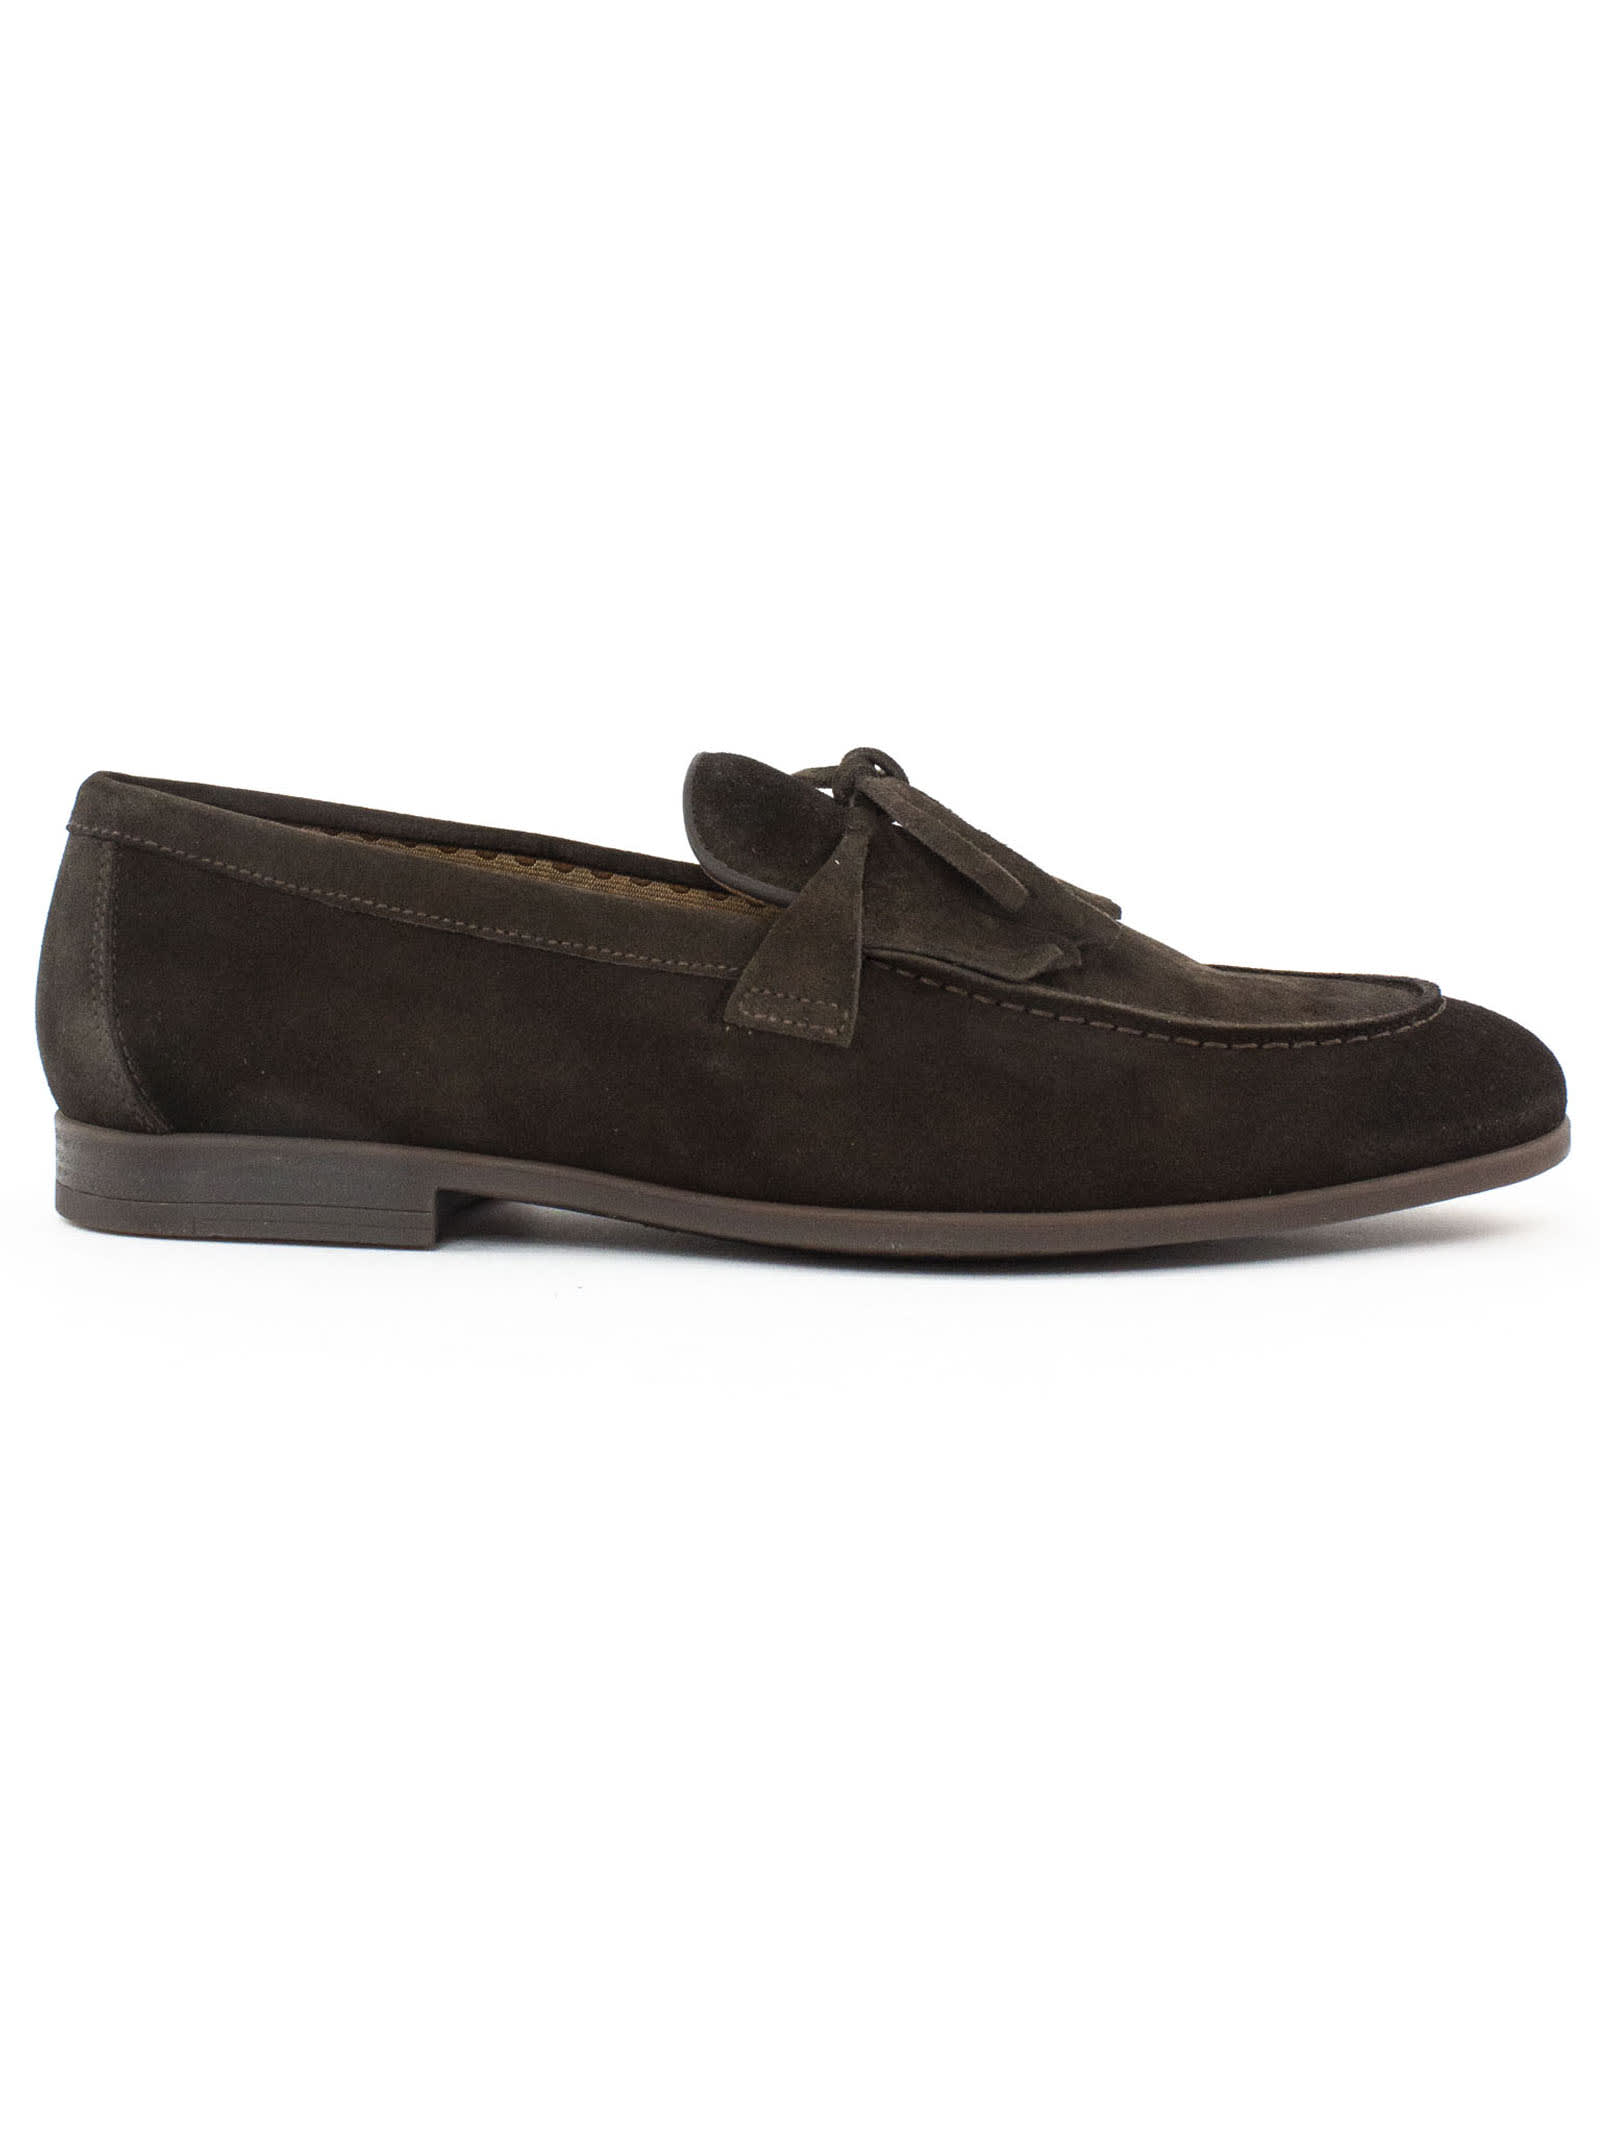 Doucals Brown Suede Loafers